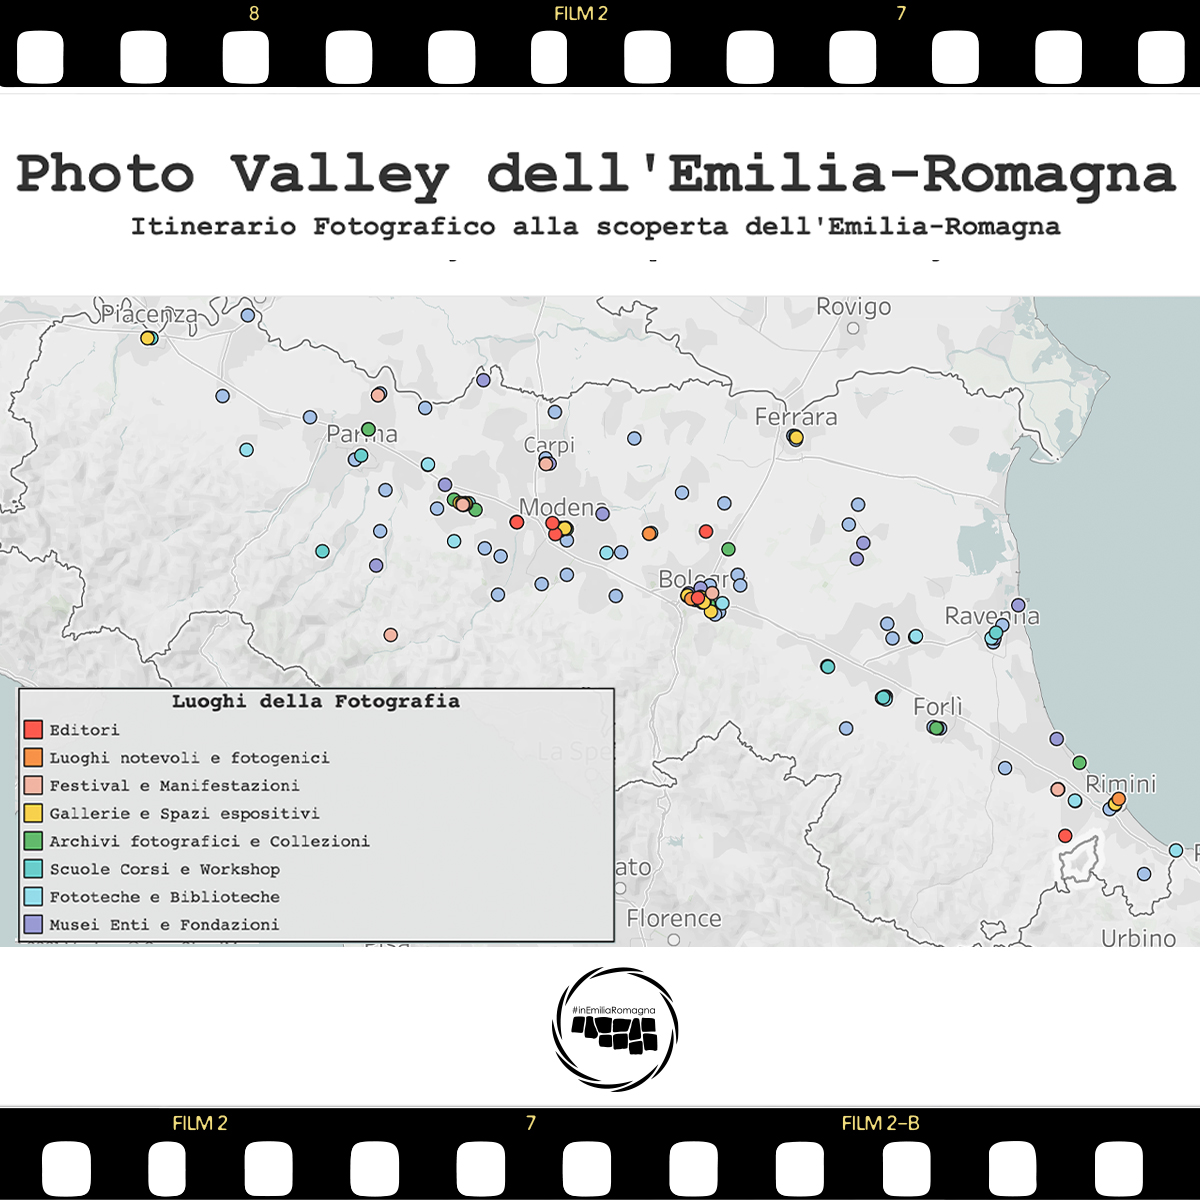 Photo Valley: the places of photography in Emilia-Romagna